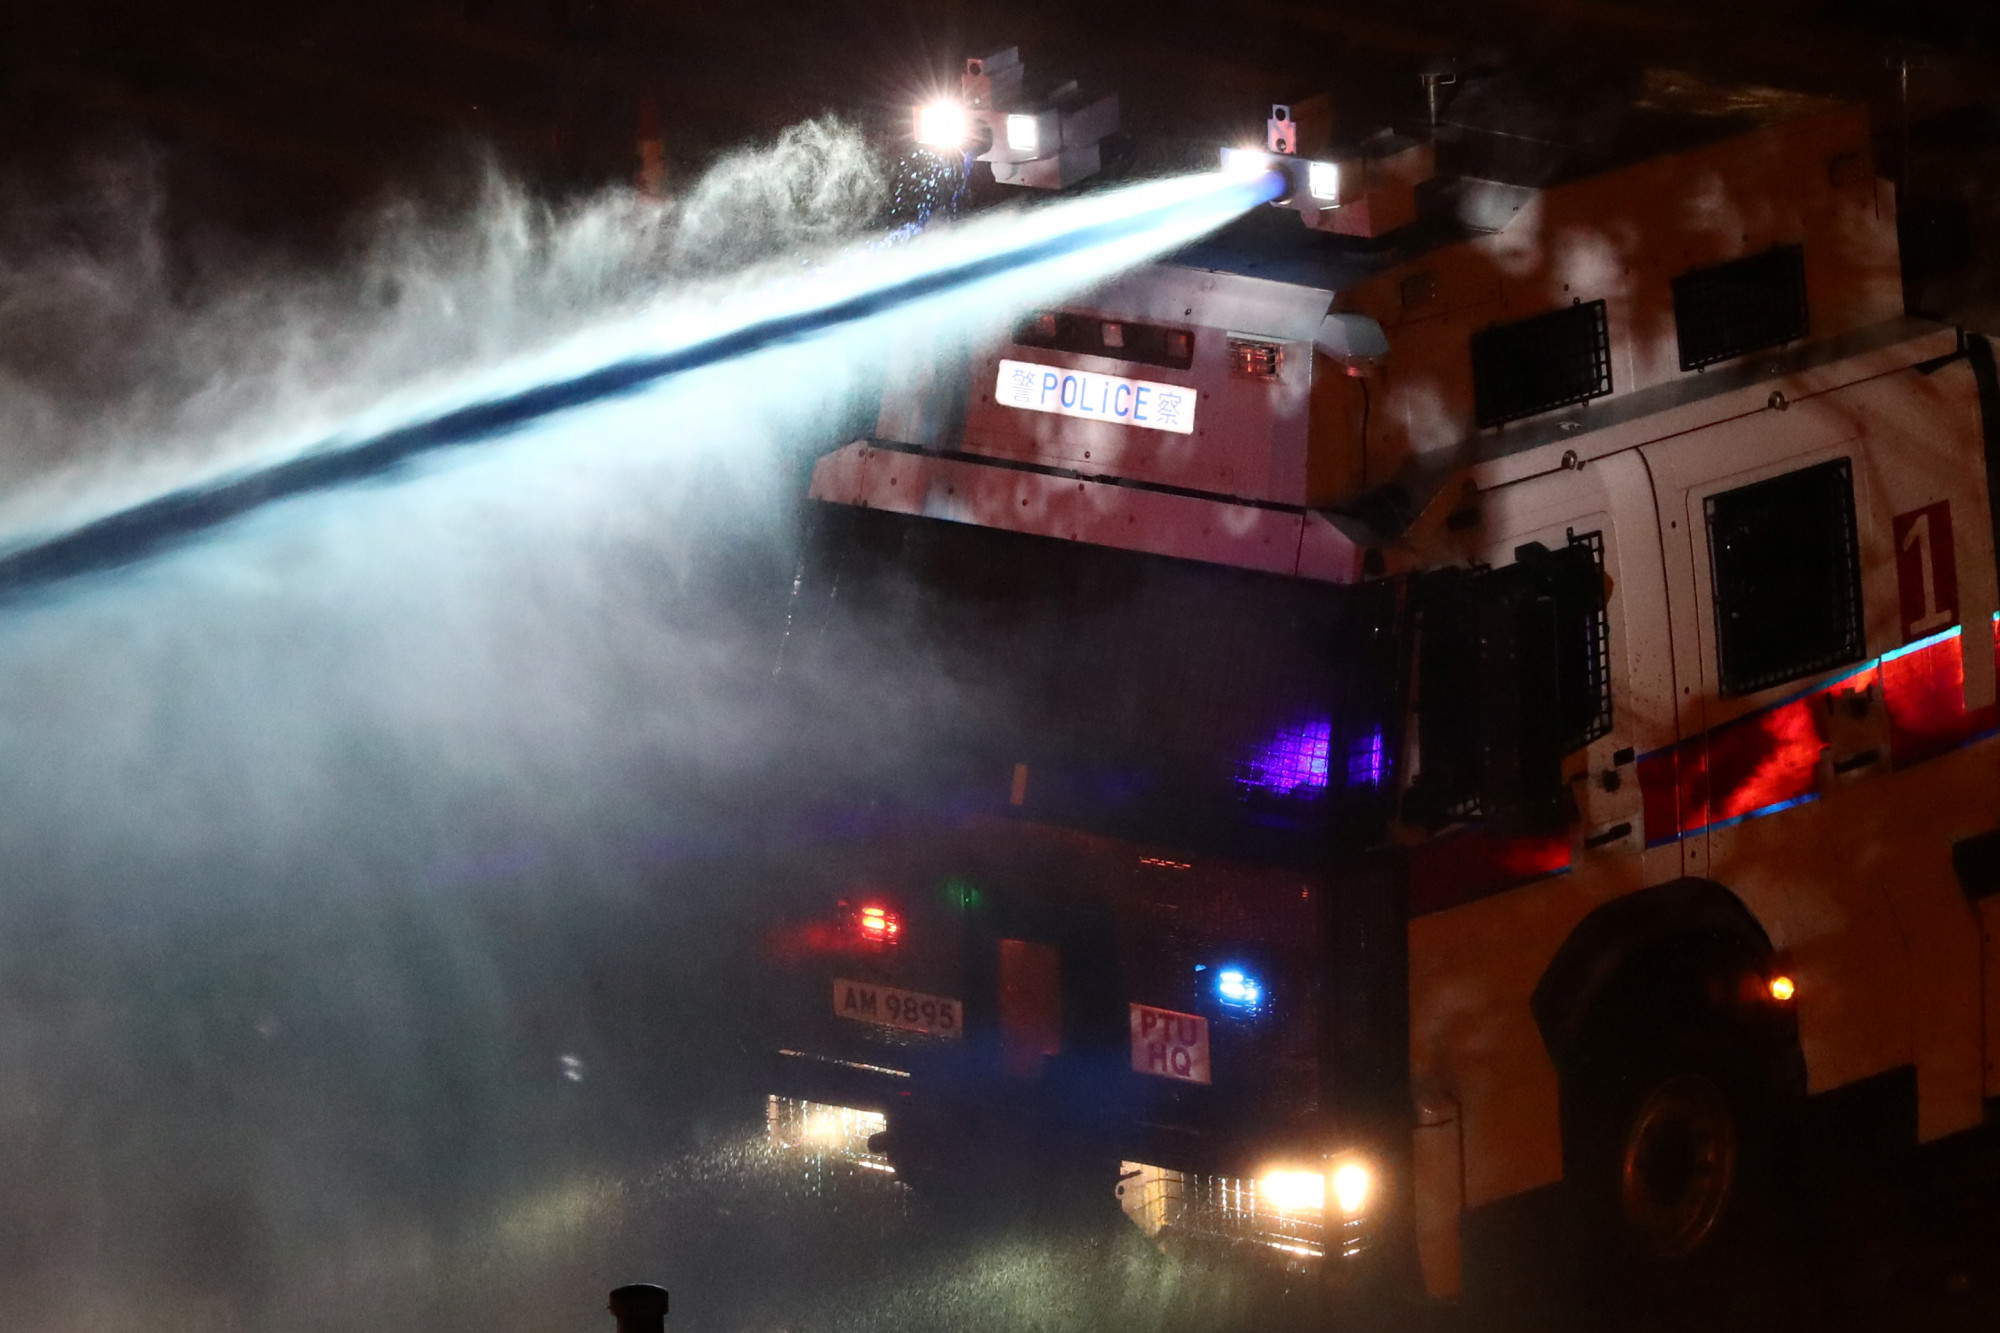 Police fires a water cannon